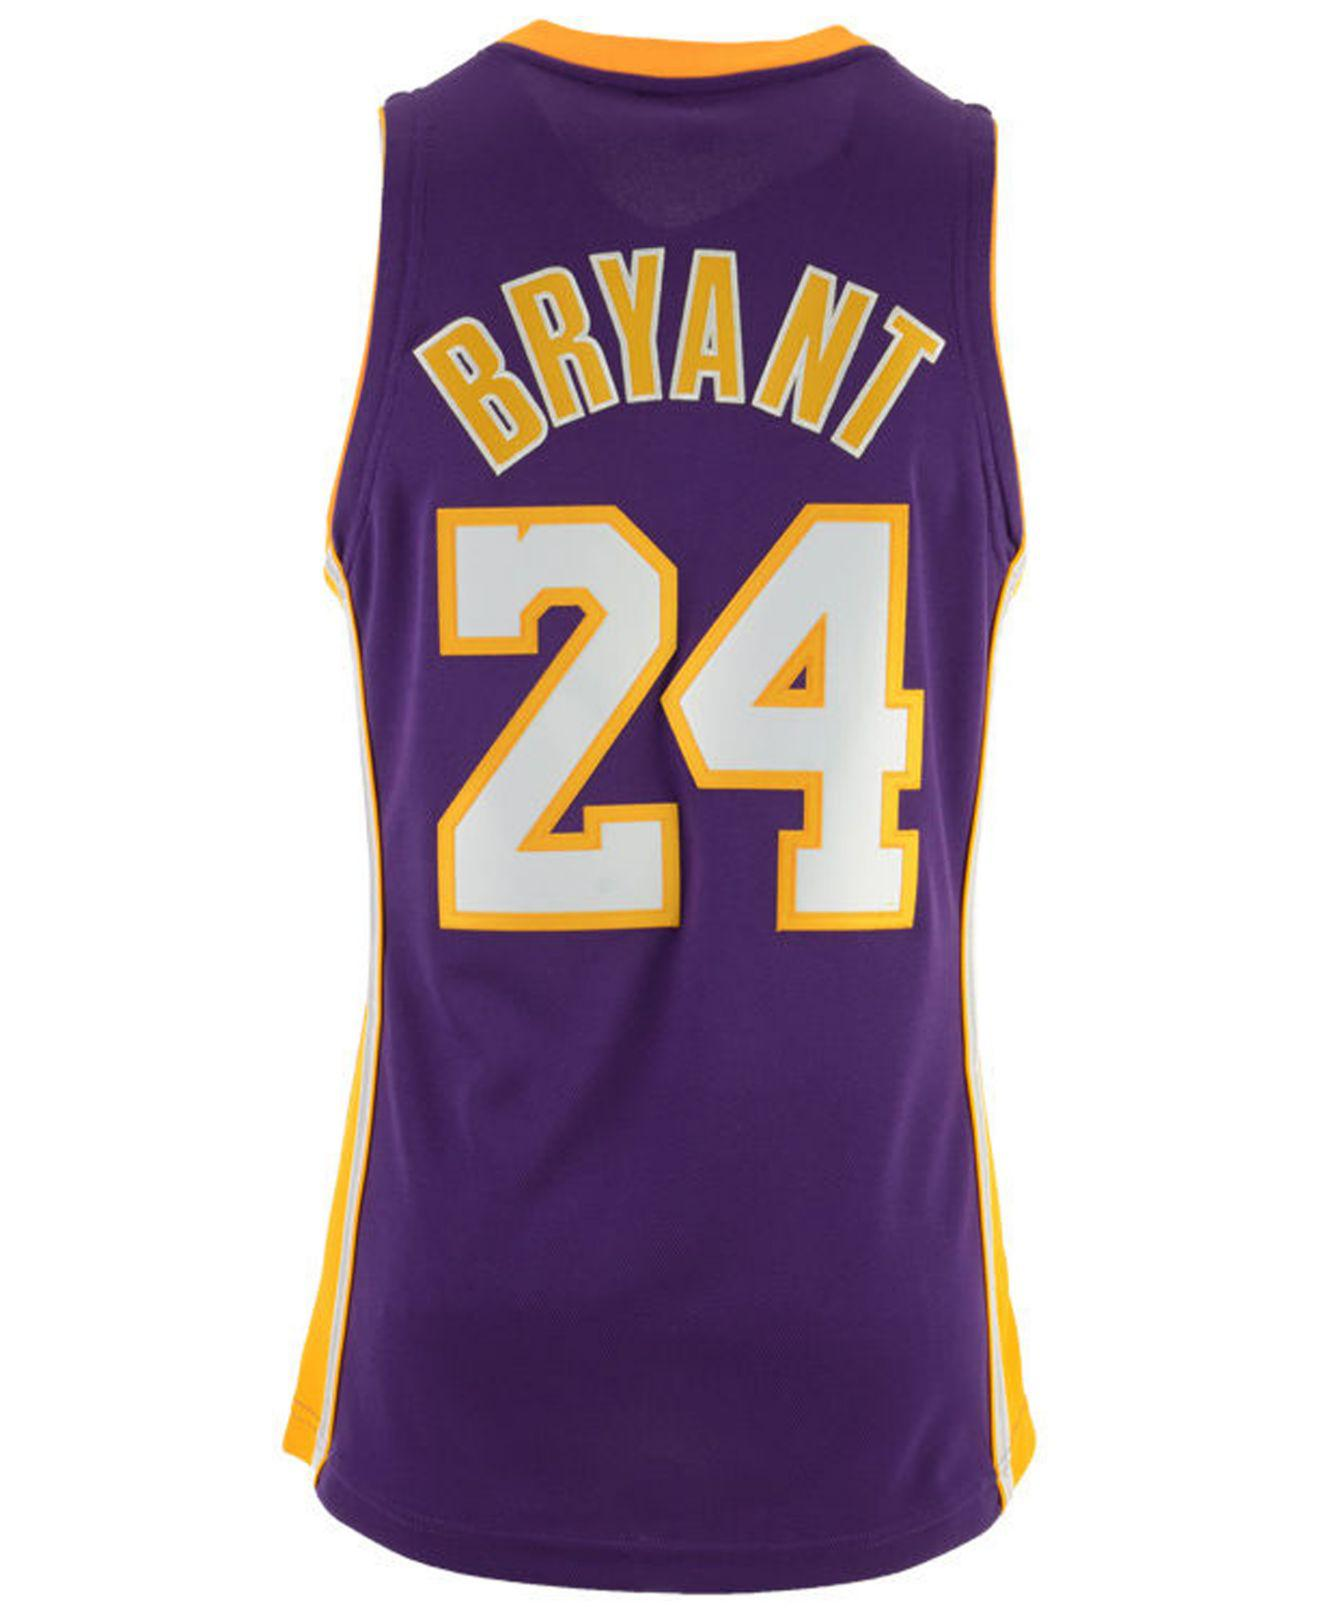 1175a9f9c83 Mitchell   Ness. Women s Purple Kobe Bryant Los Angeles Lakers Authentic  Jersey